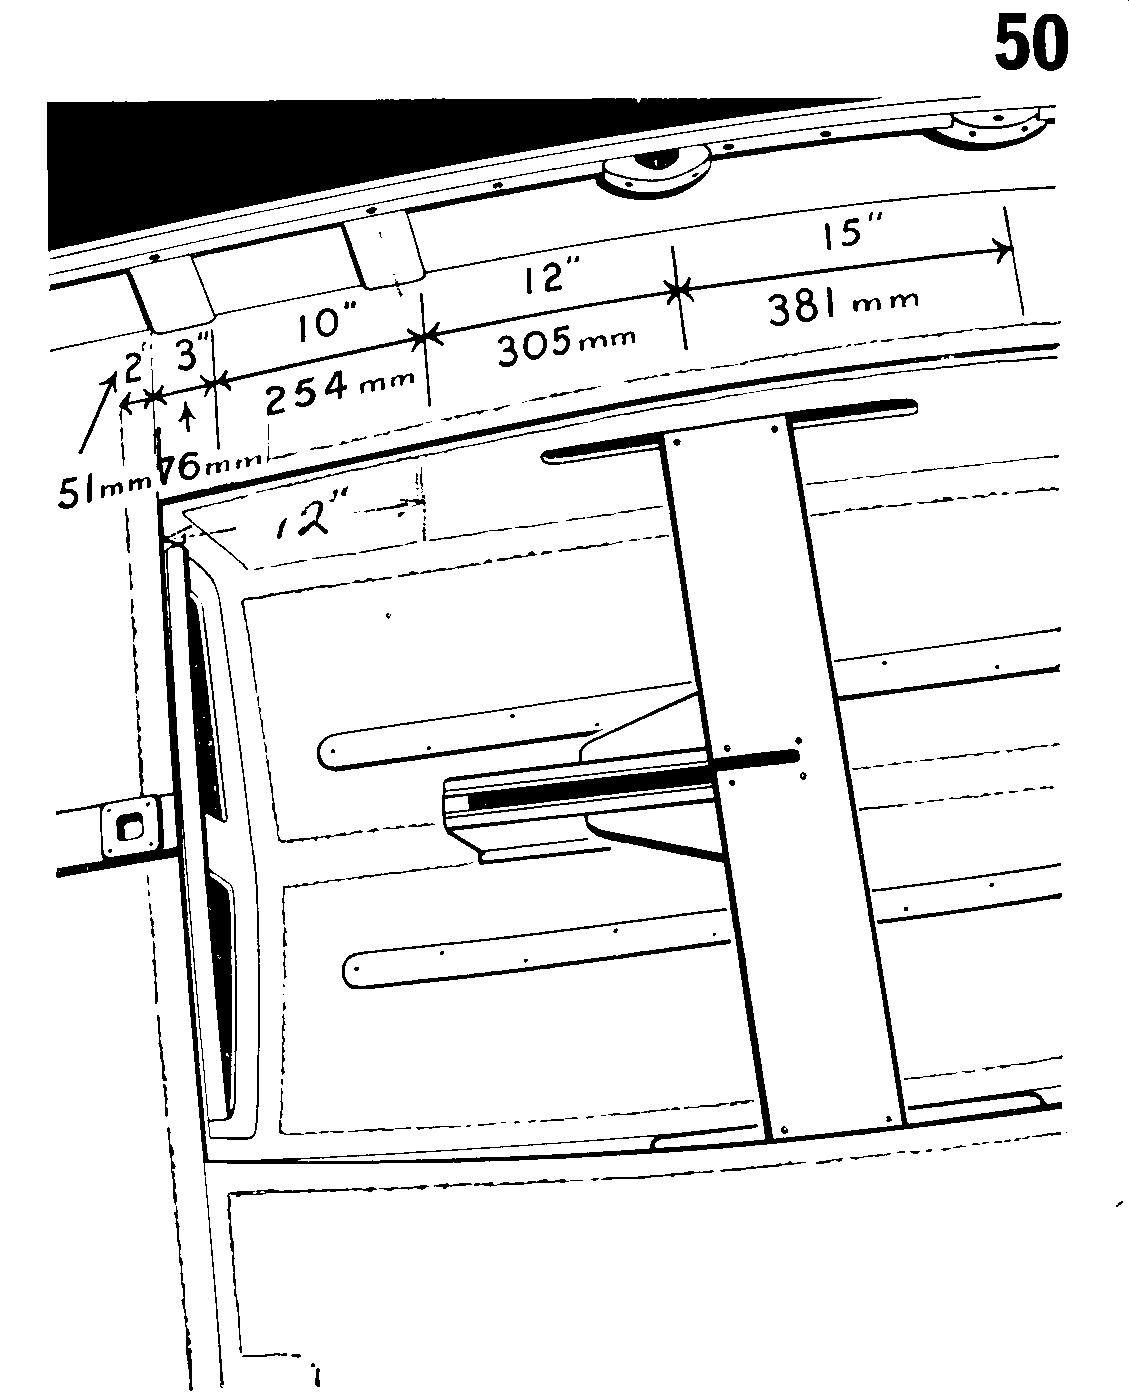 A drawing showing the position of the shroud and rowlock blocks on a Mirror dinghy